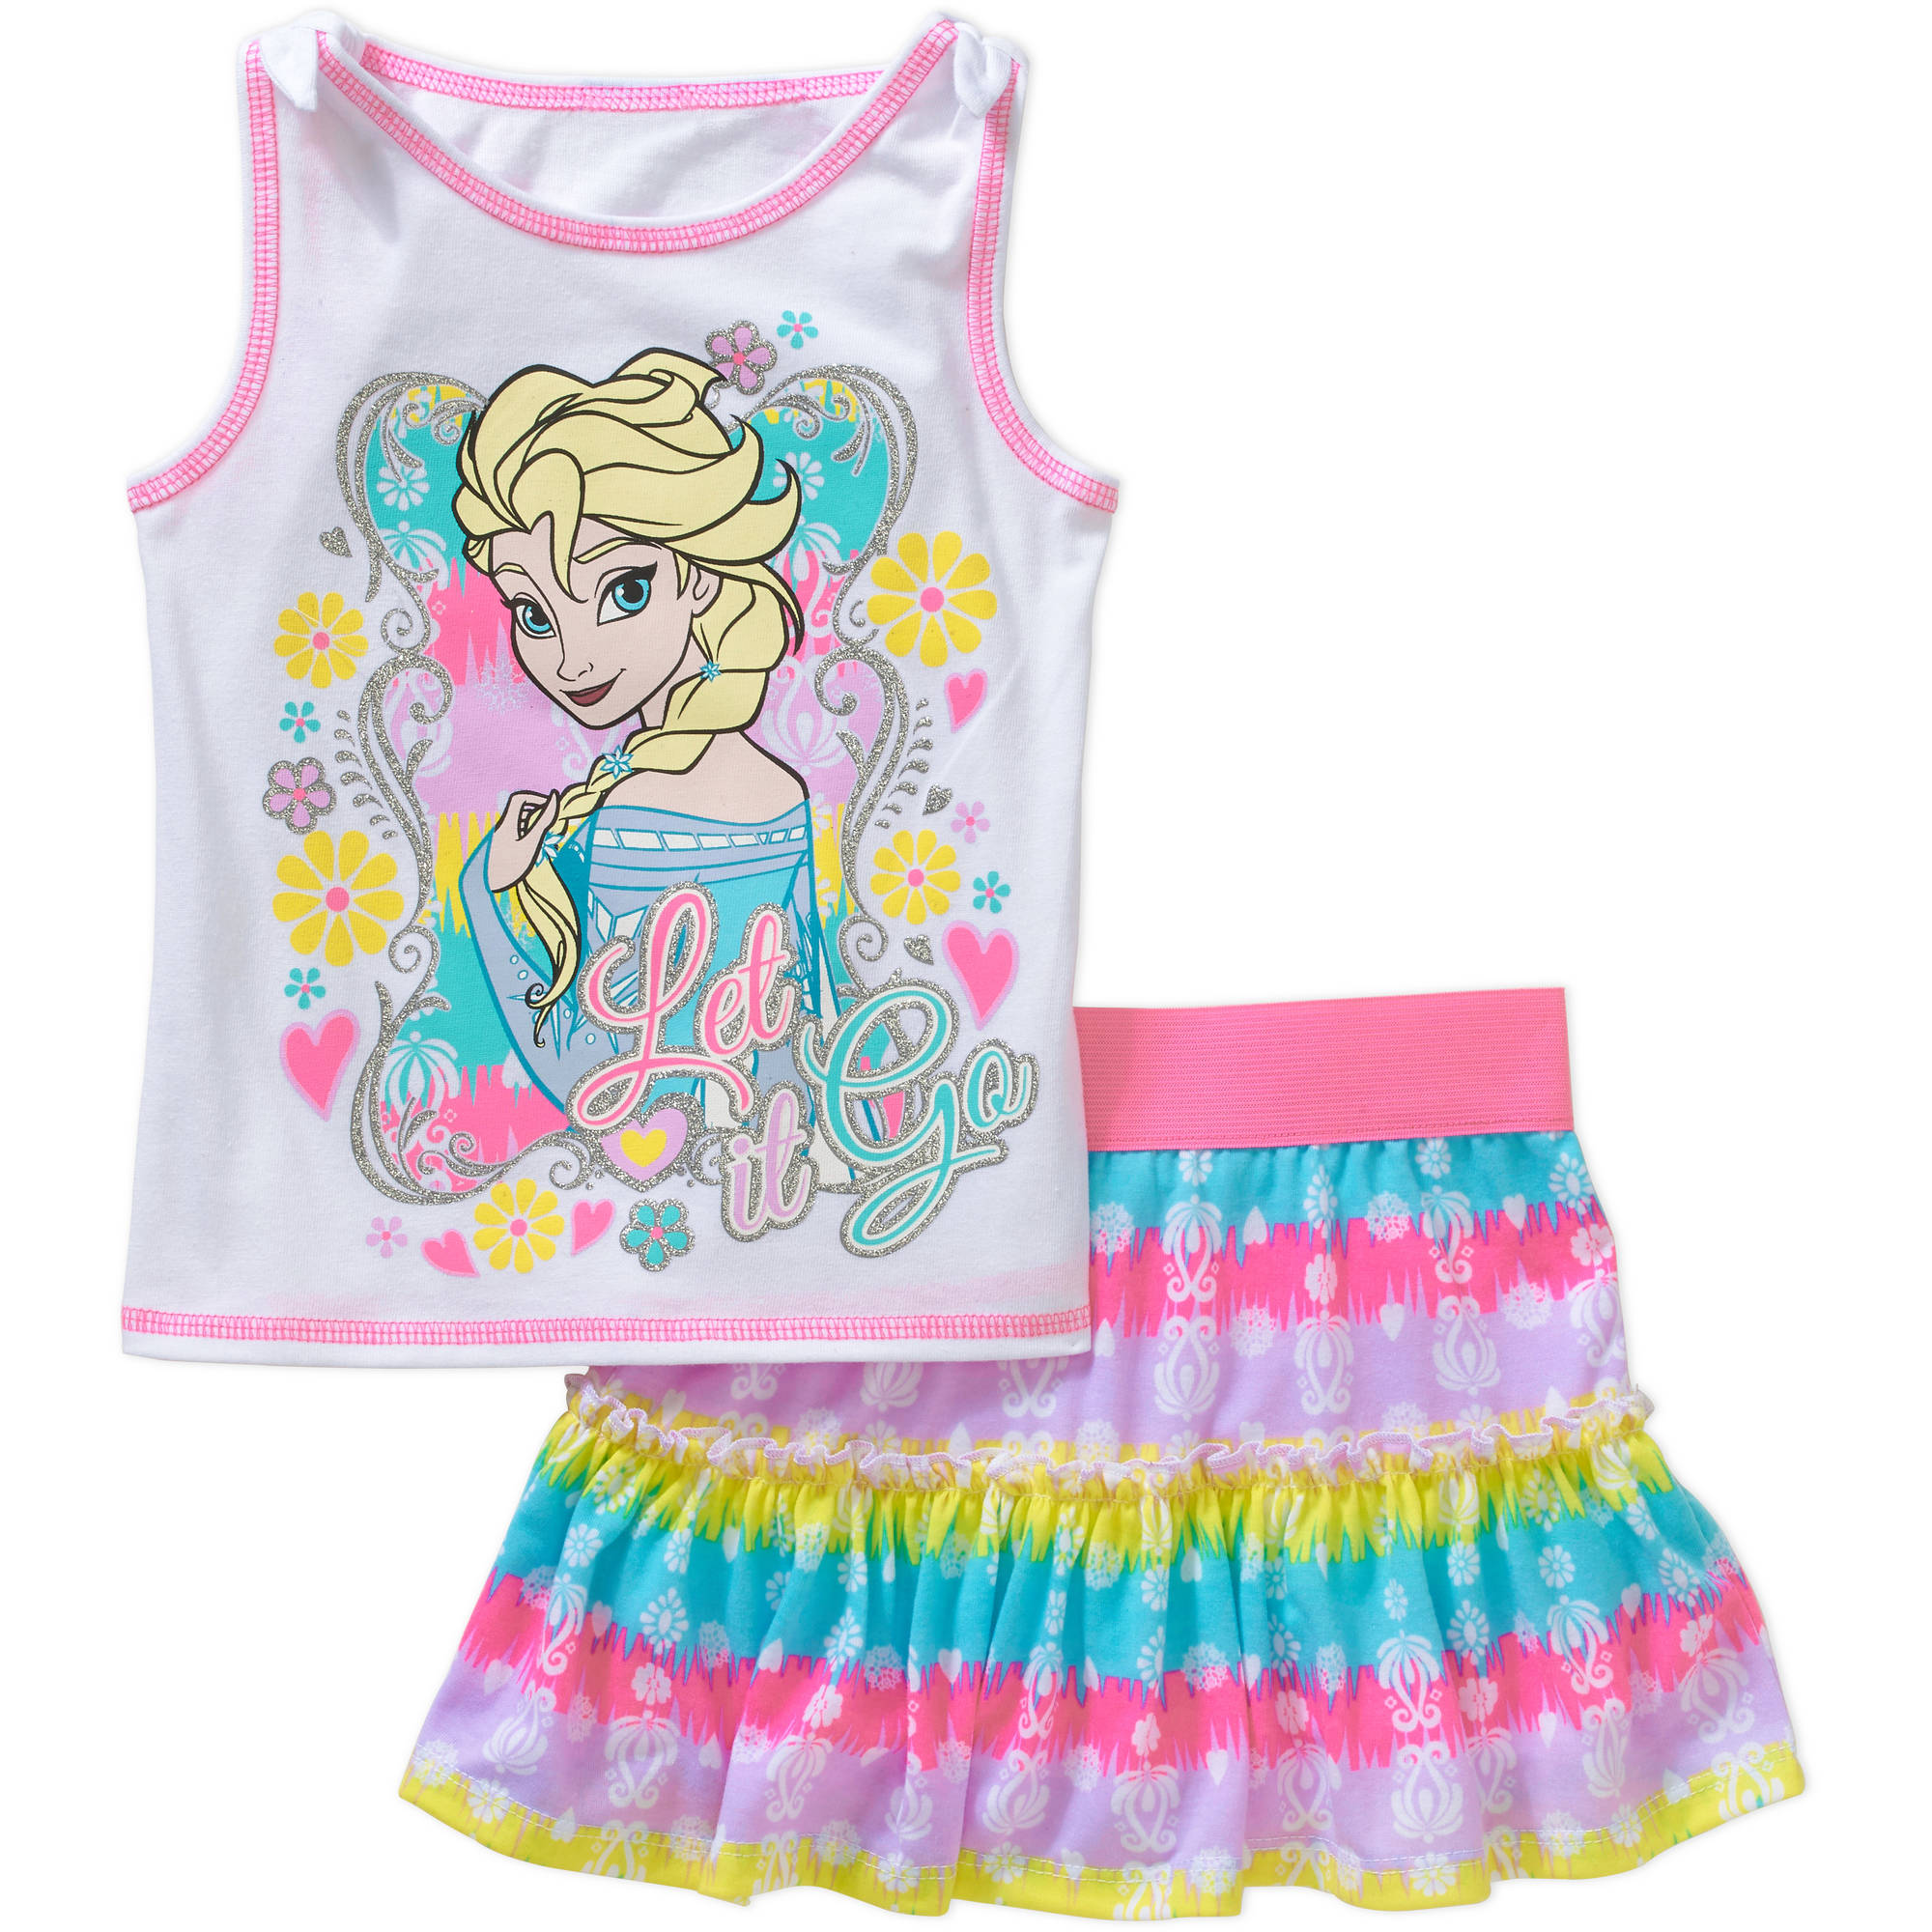 Disney Frozen Baby Toddler Girl Tank and Skirt Outfit Set